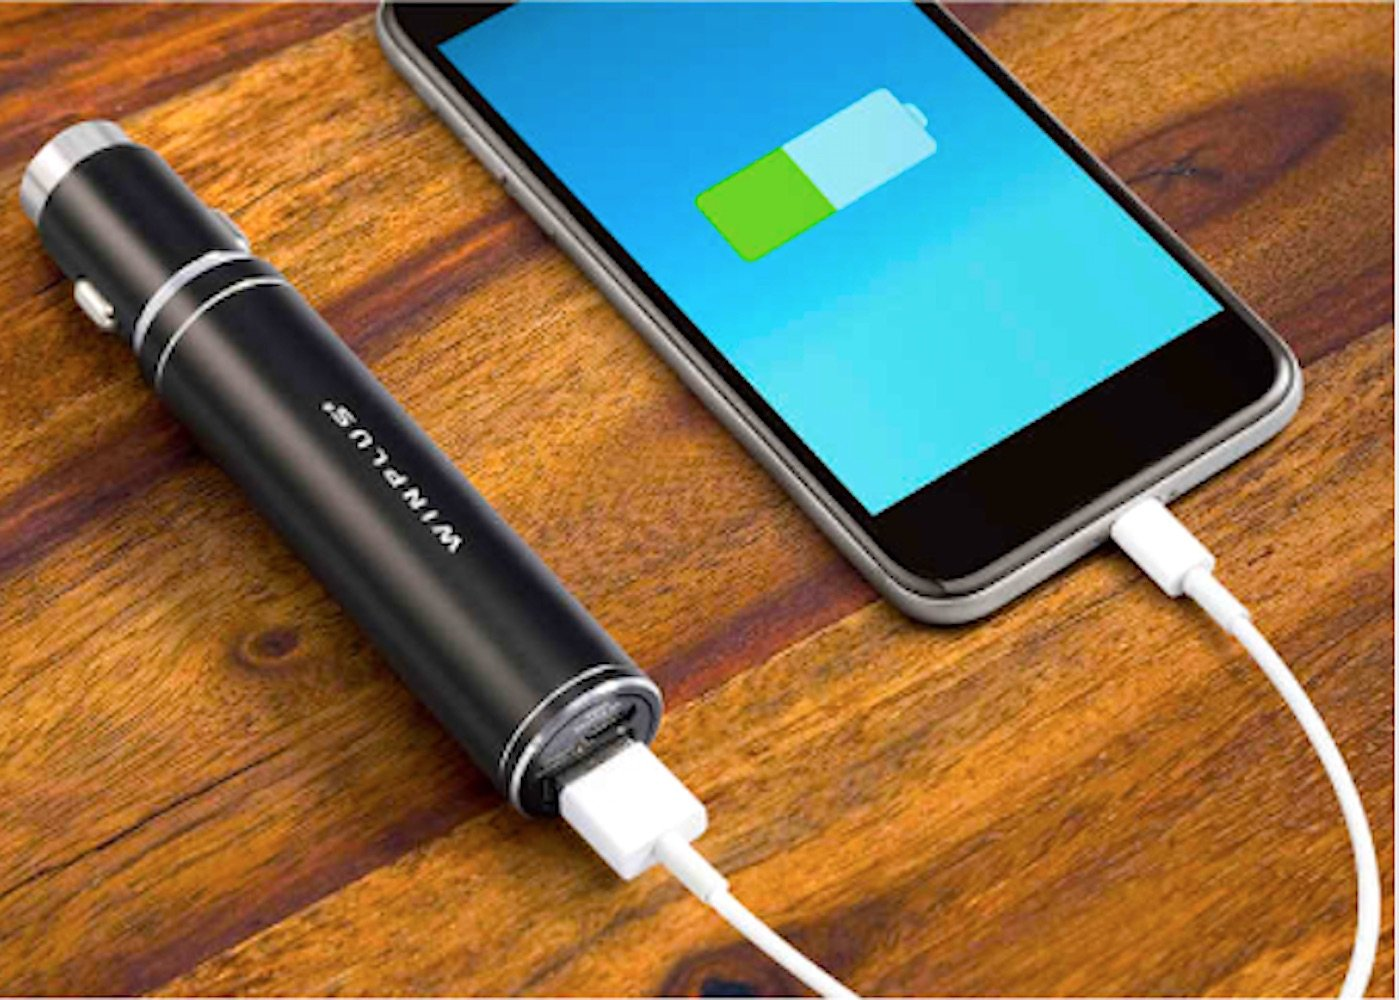 3-in-1 Portable Power Bank & Auto Emergency Tool 2-pack